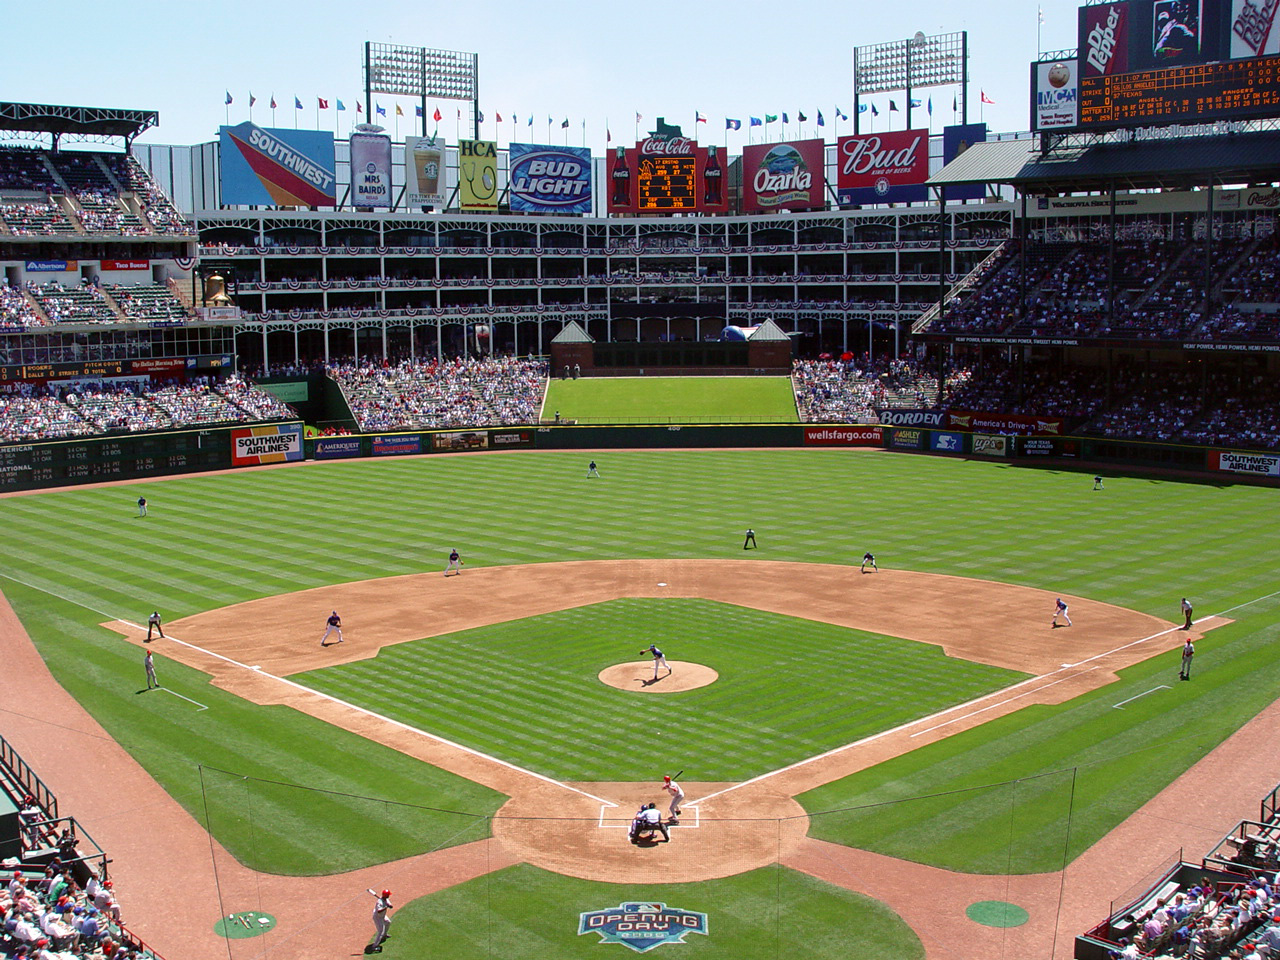 new baseball field wallpaper high quality pics download